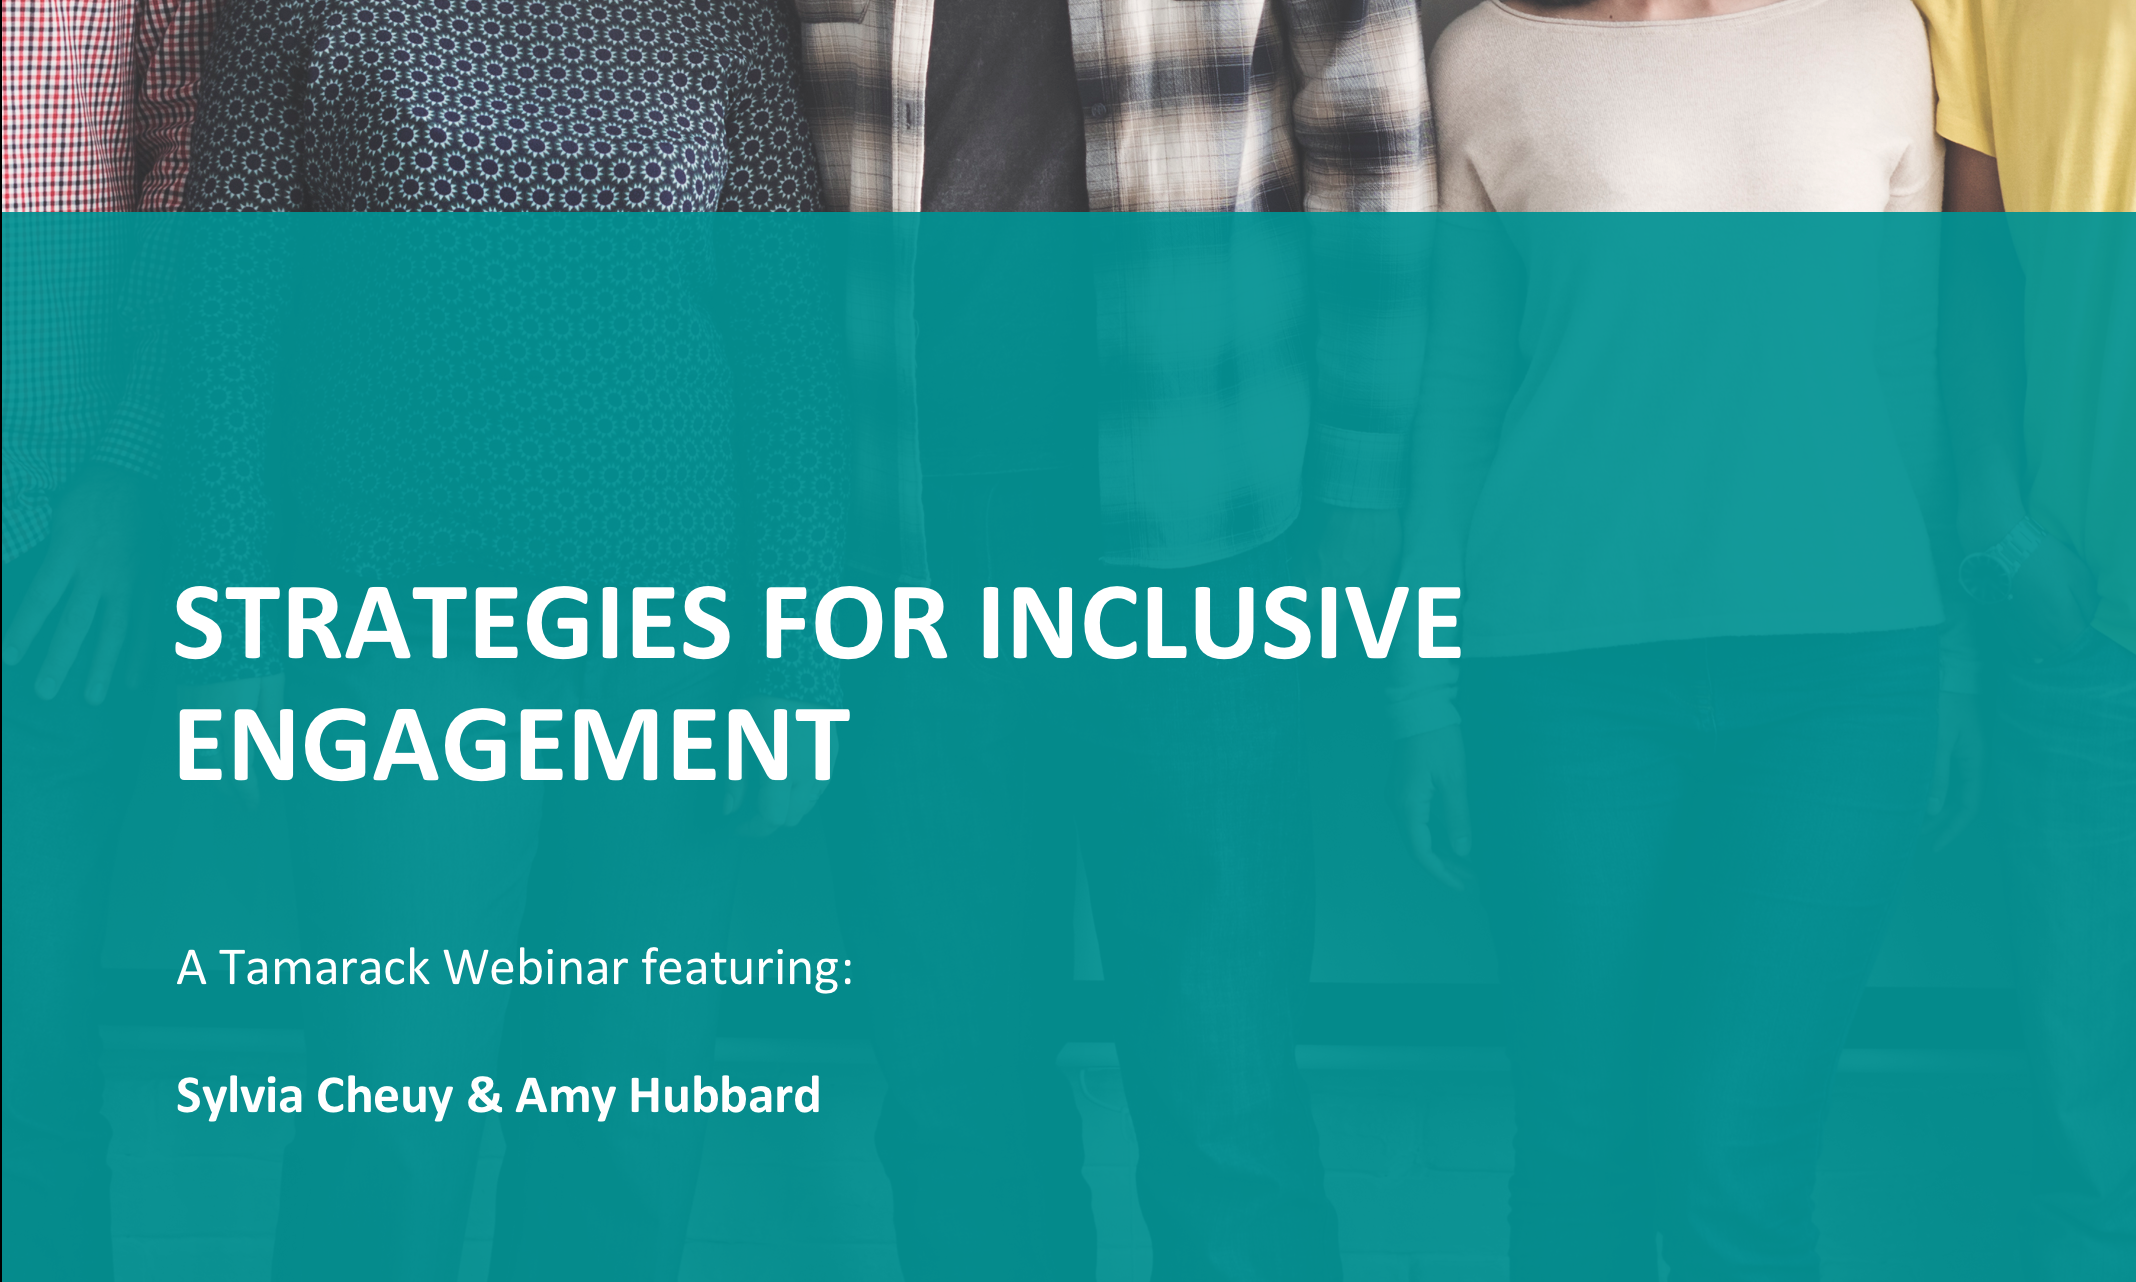 Strategies for Inclusive Engagement 53.png